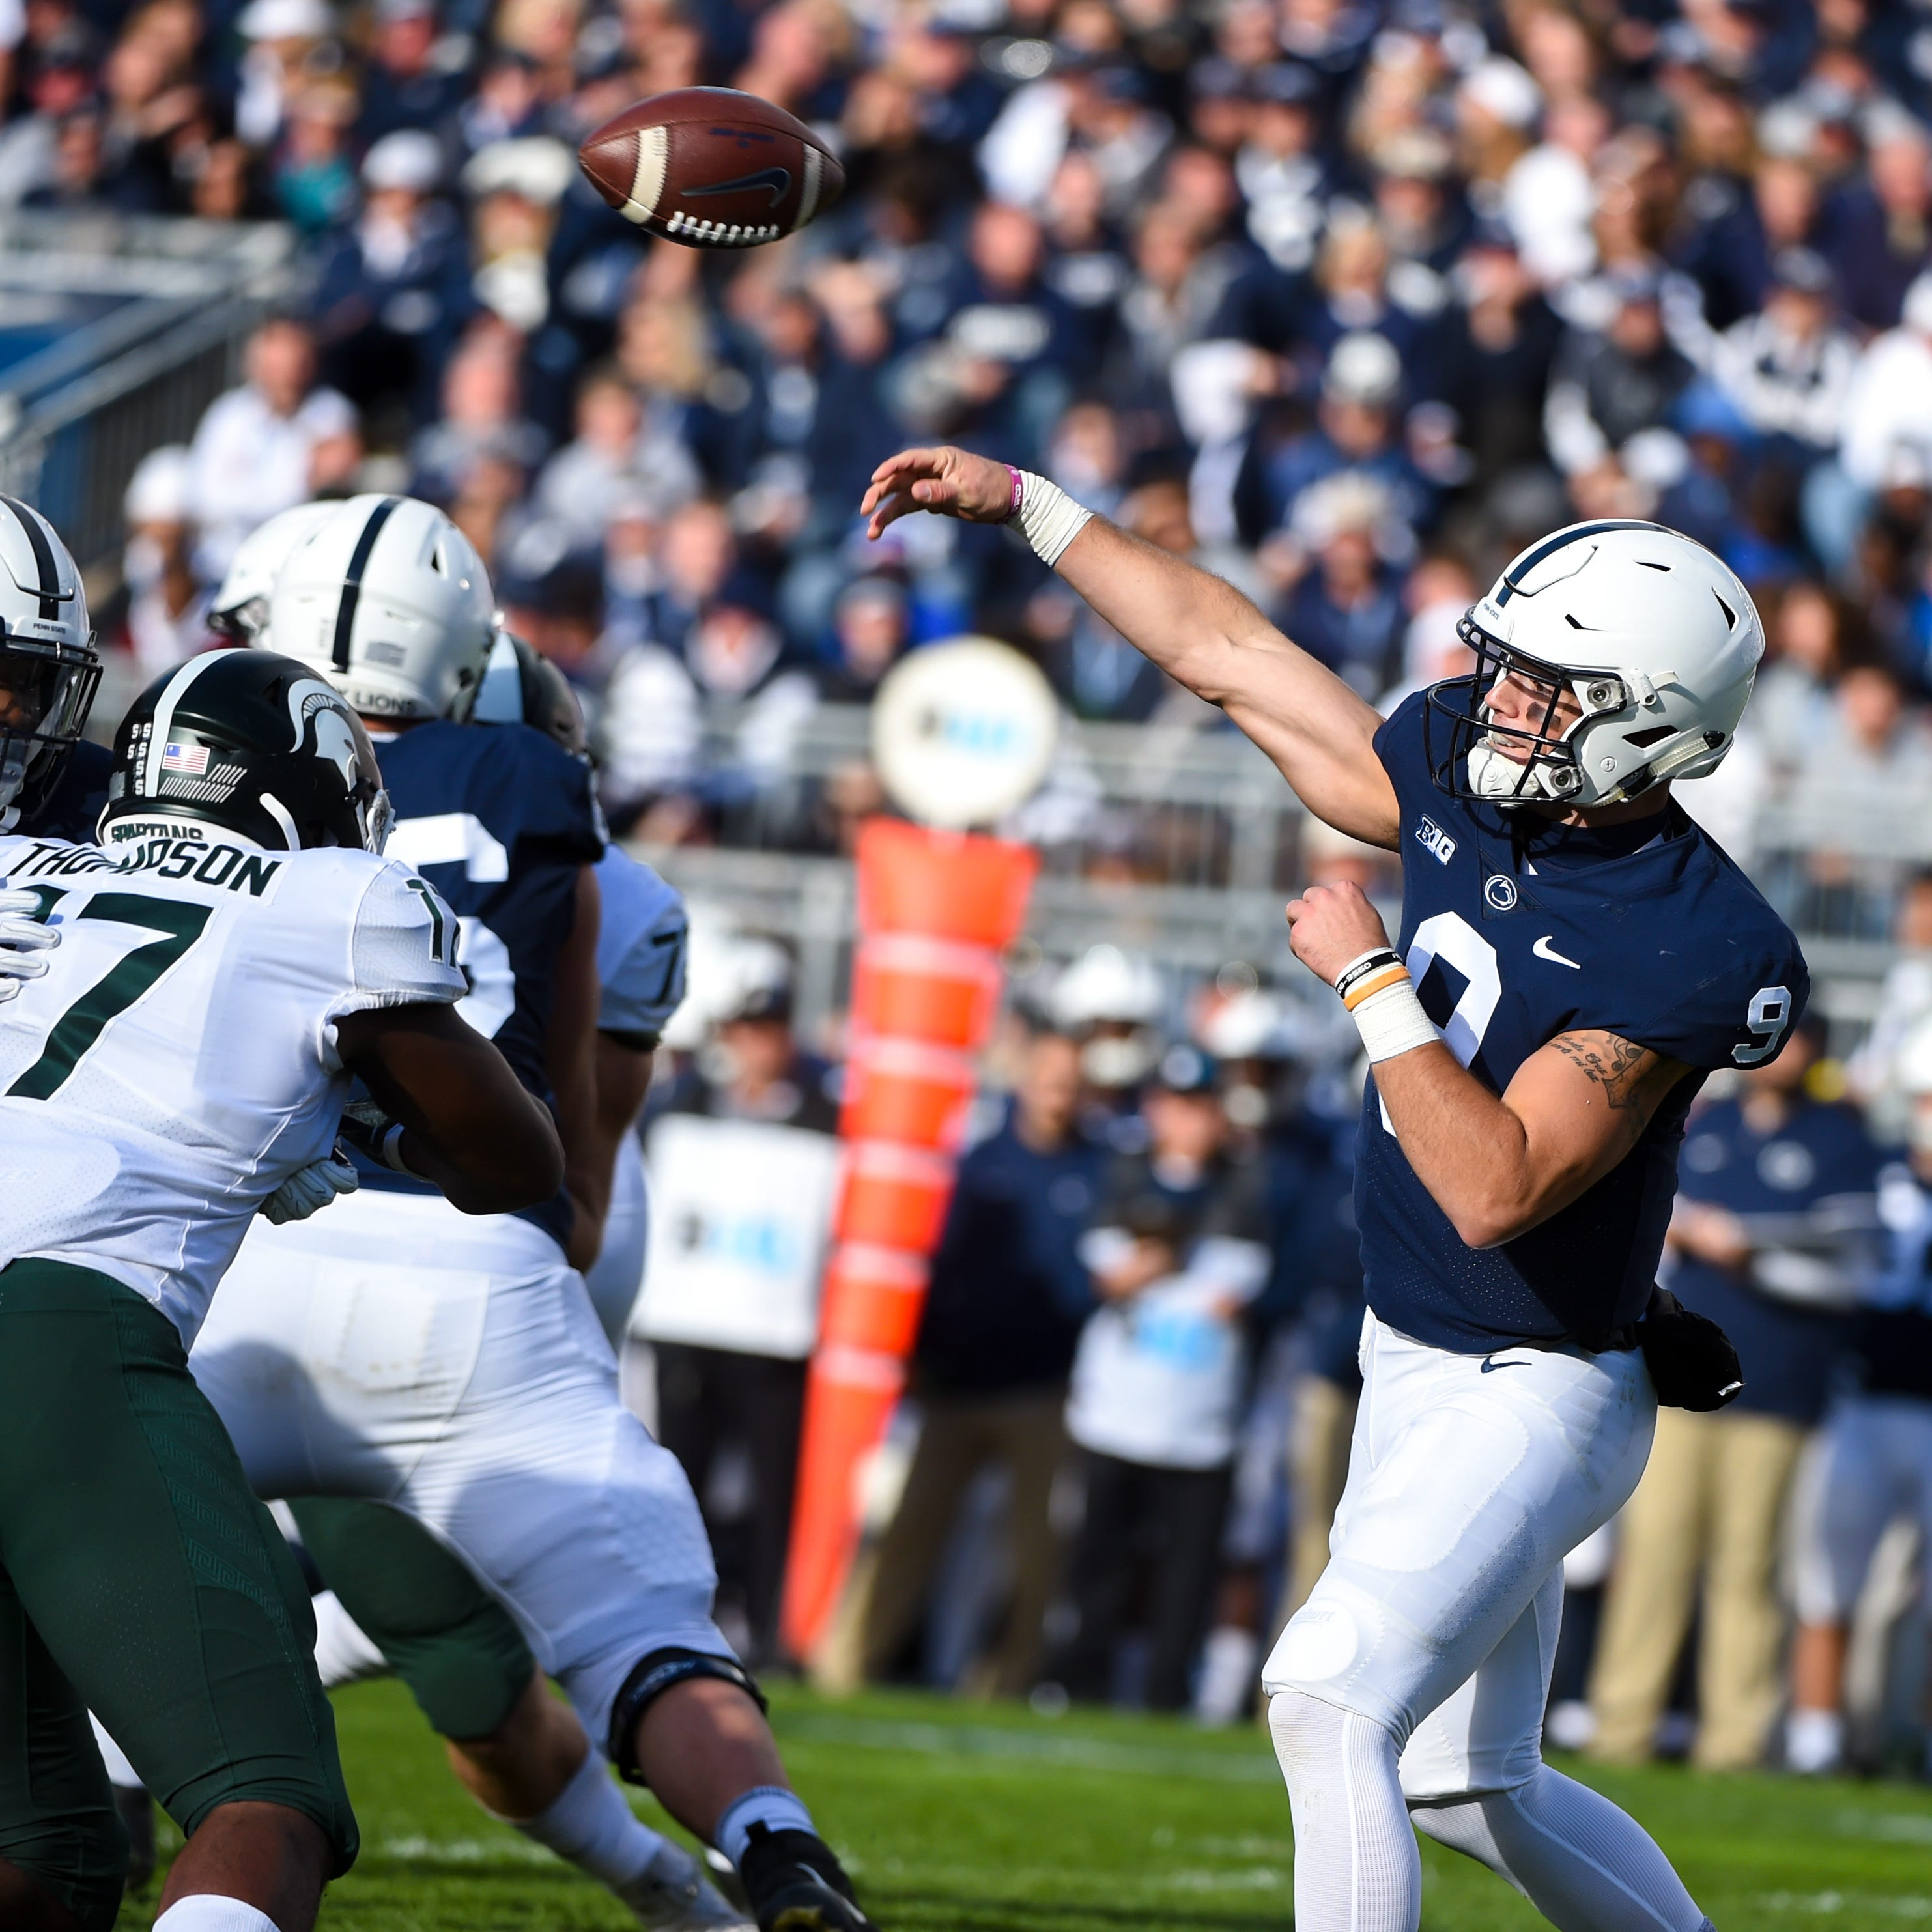 Penn State prediction vs. Indiana: Lions look to land enough desperate punches